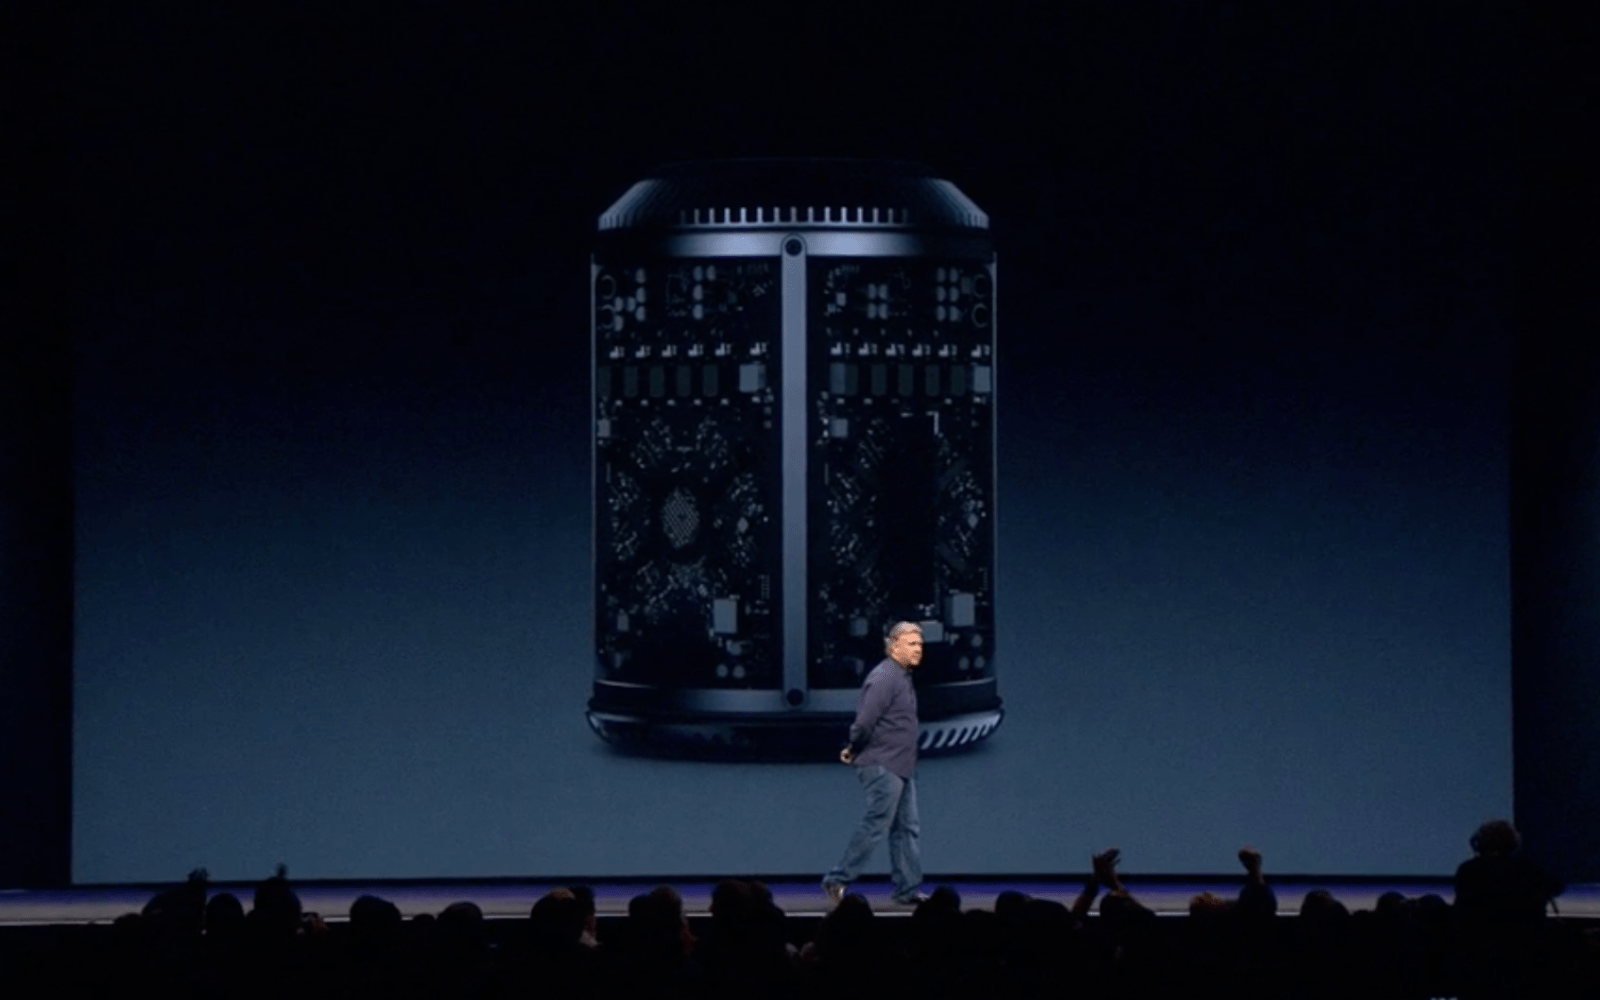 Mac Pros start shipping with delivery date of December 30, demand outstripping supply (again)